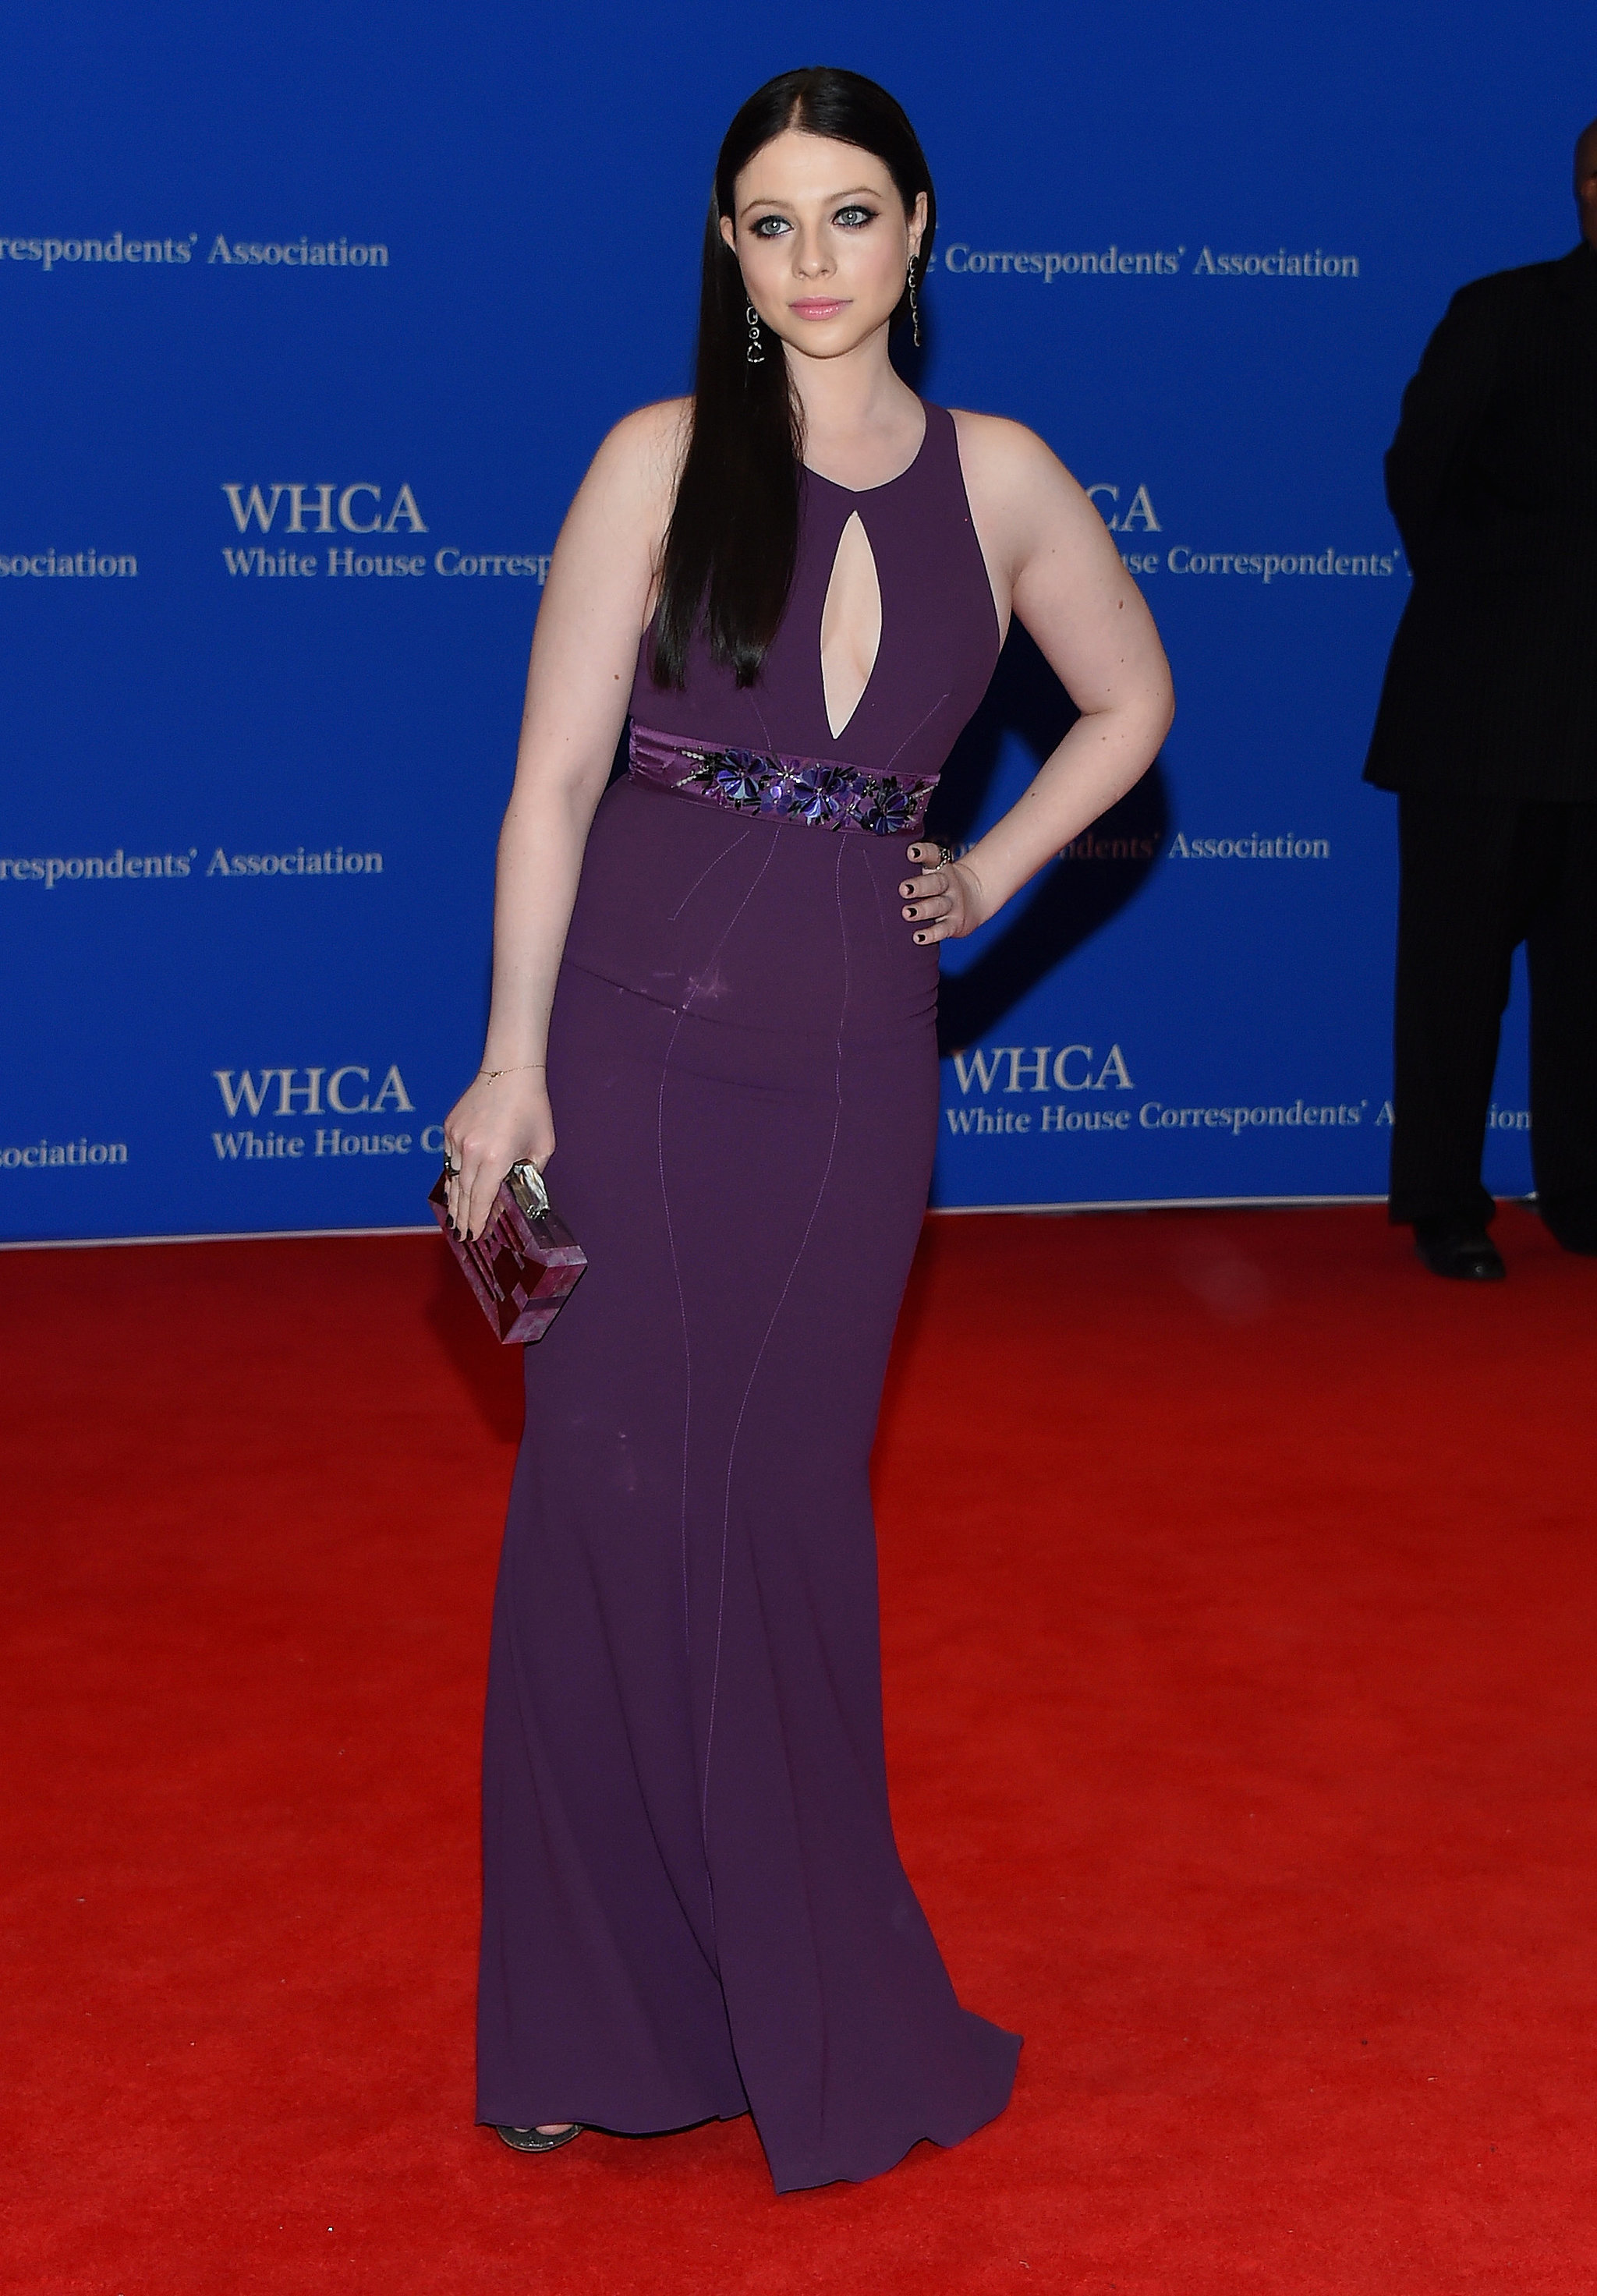 Michelle Trachtenberg | Hollywood Goes to Washington: See